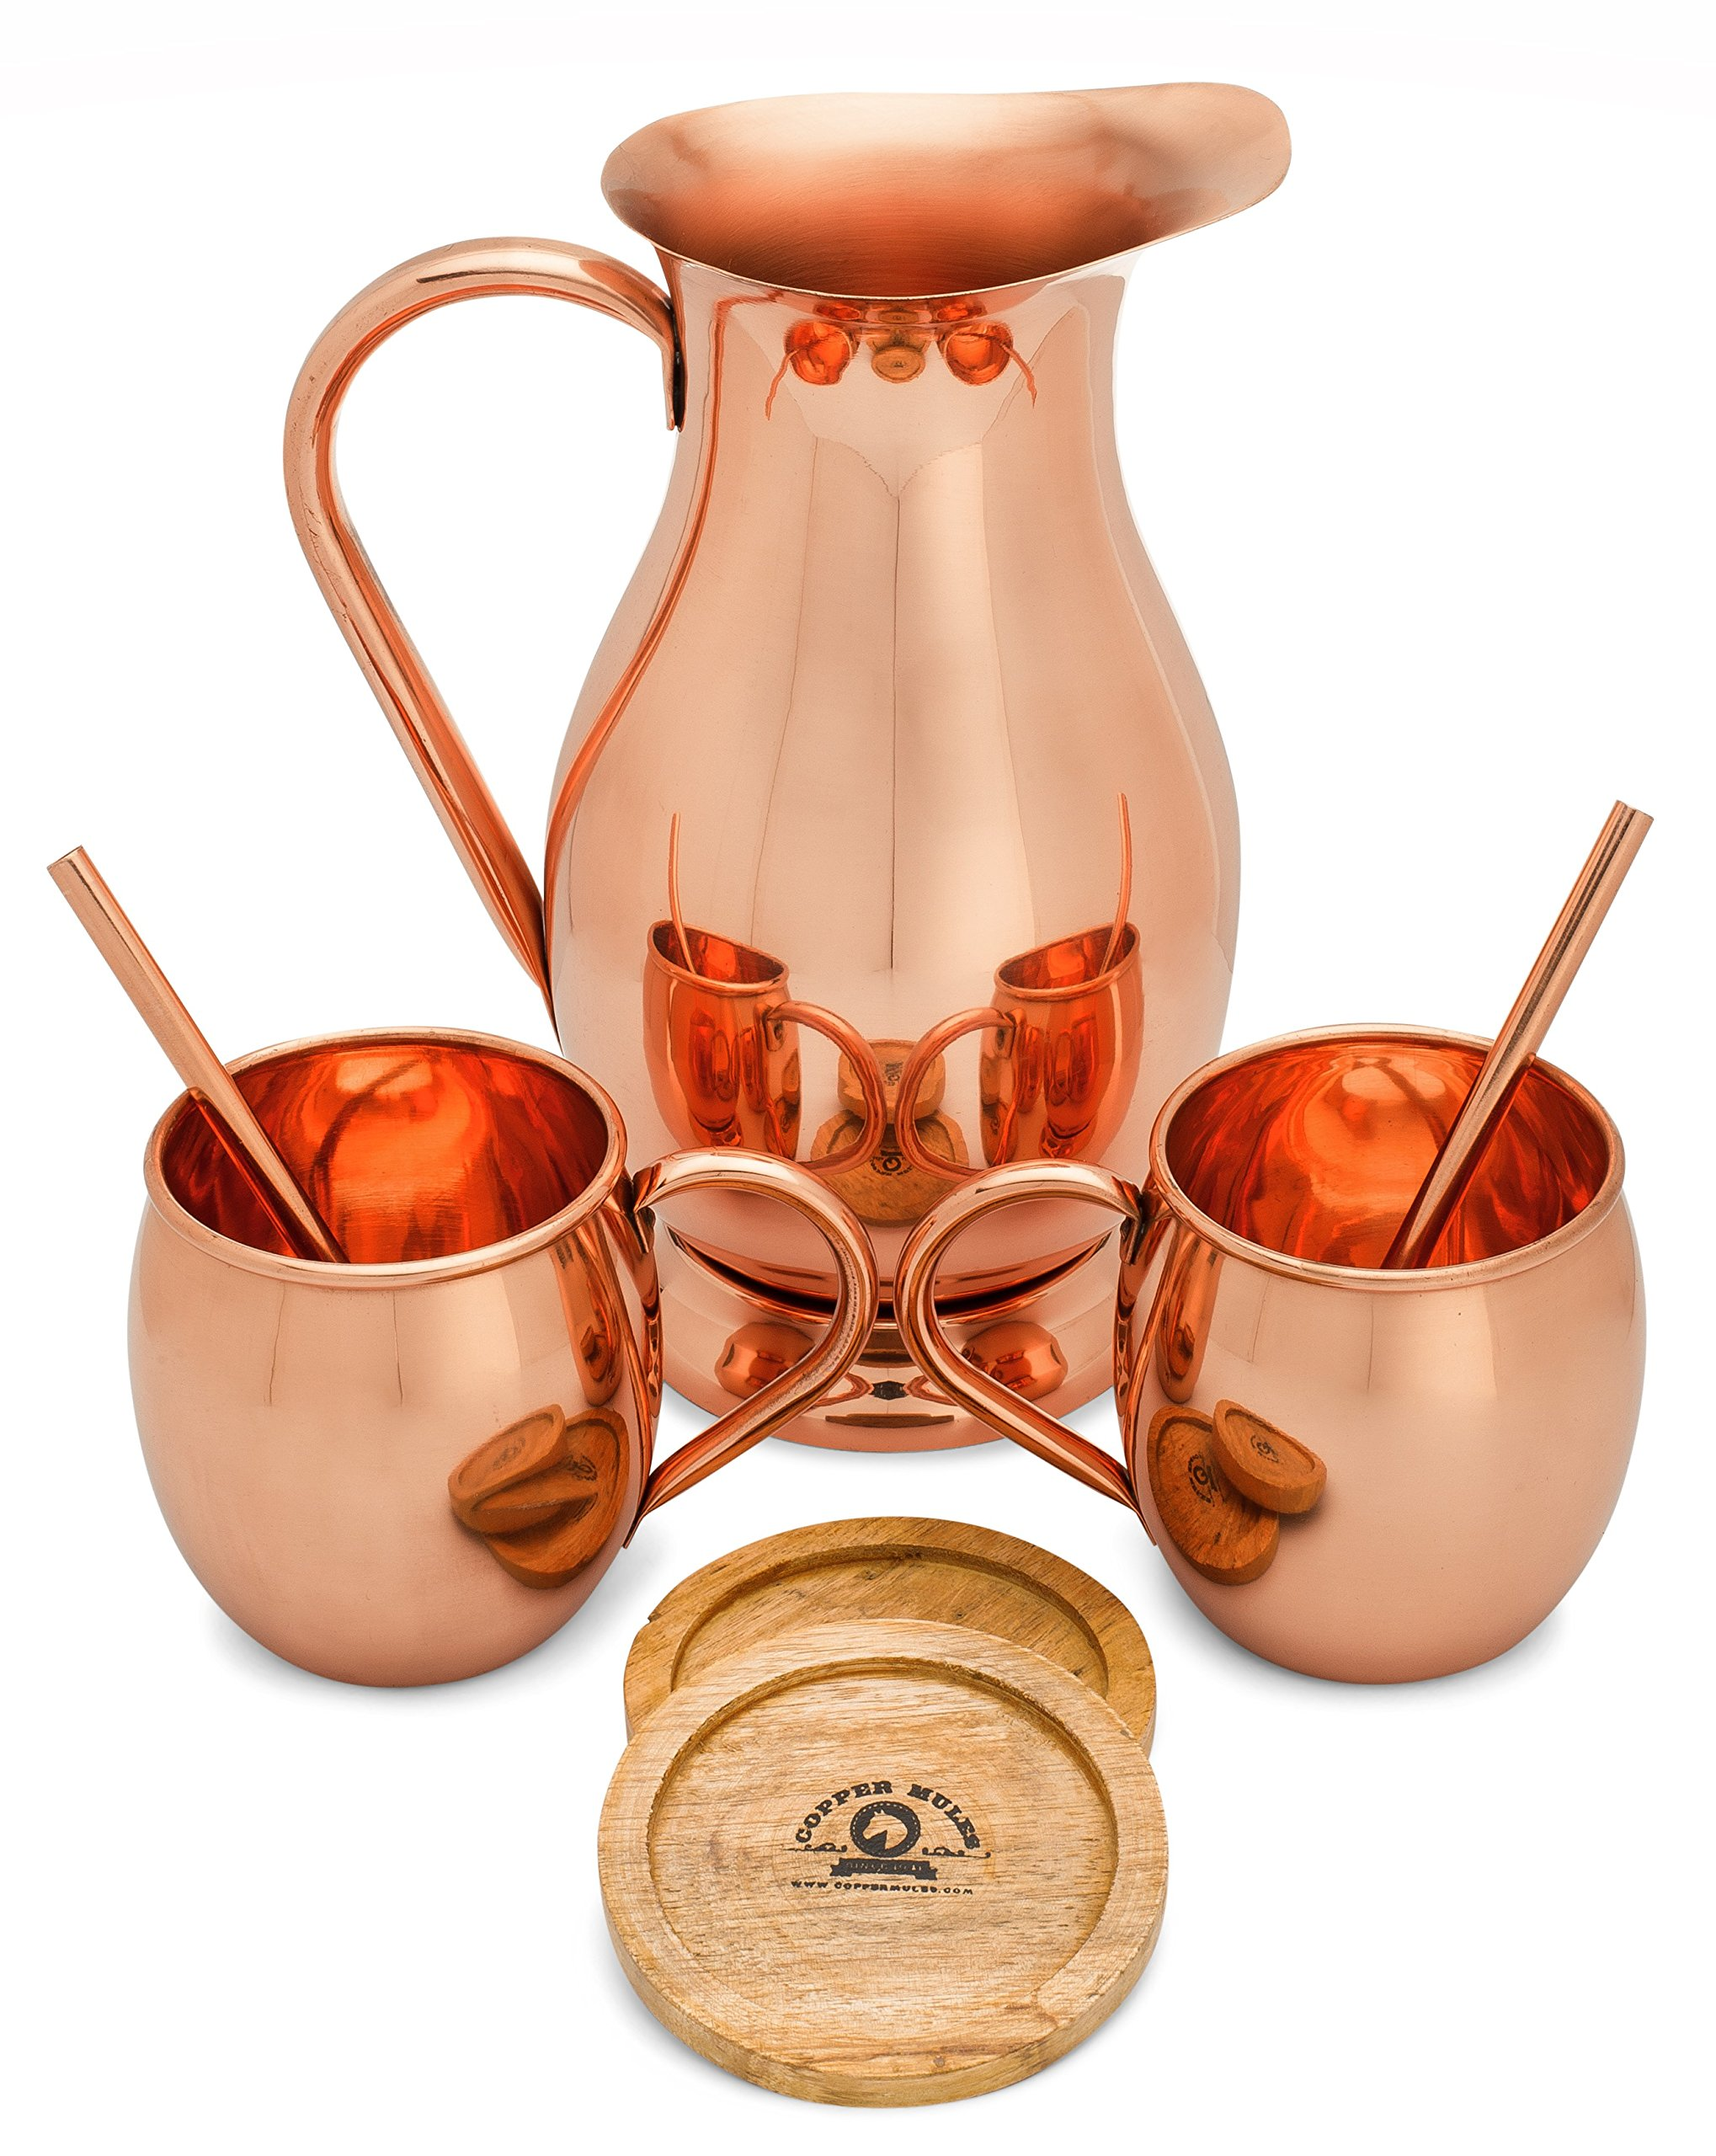 Elegant Copper Pitcher (70oz) and Copper Mugs Set - Handcrafted by Highly Experienced Artisans